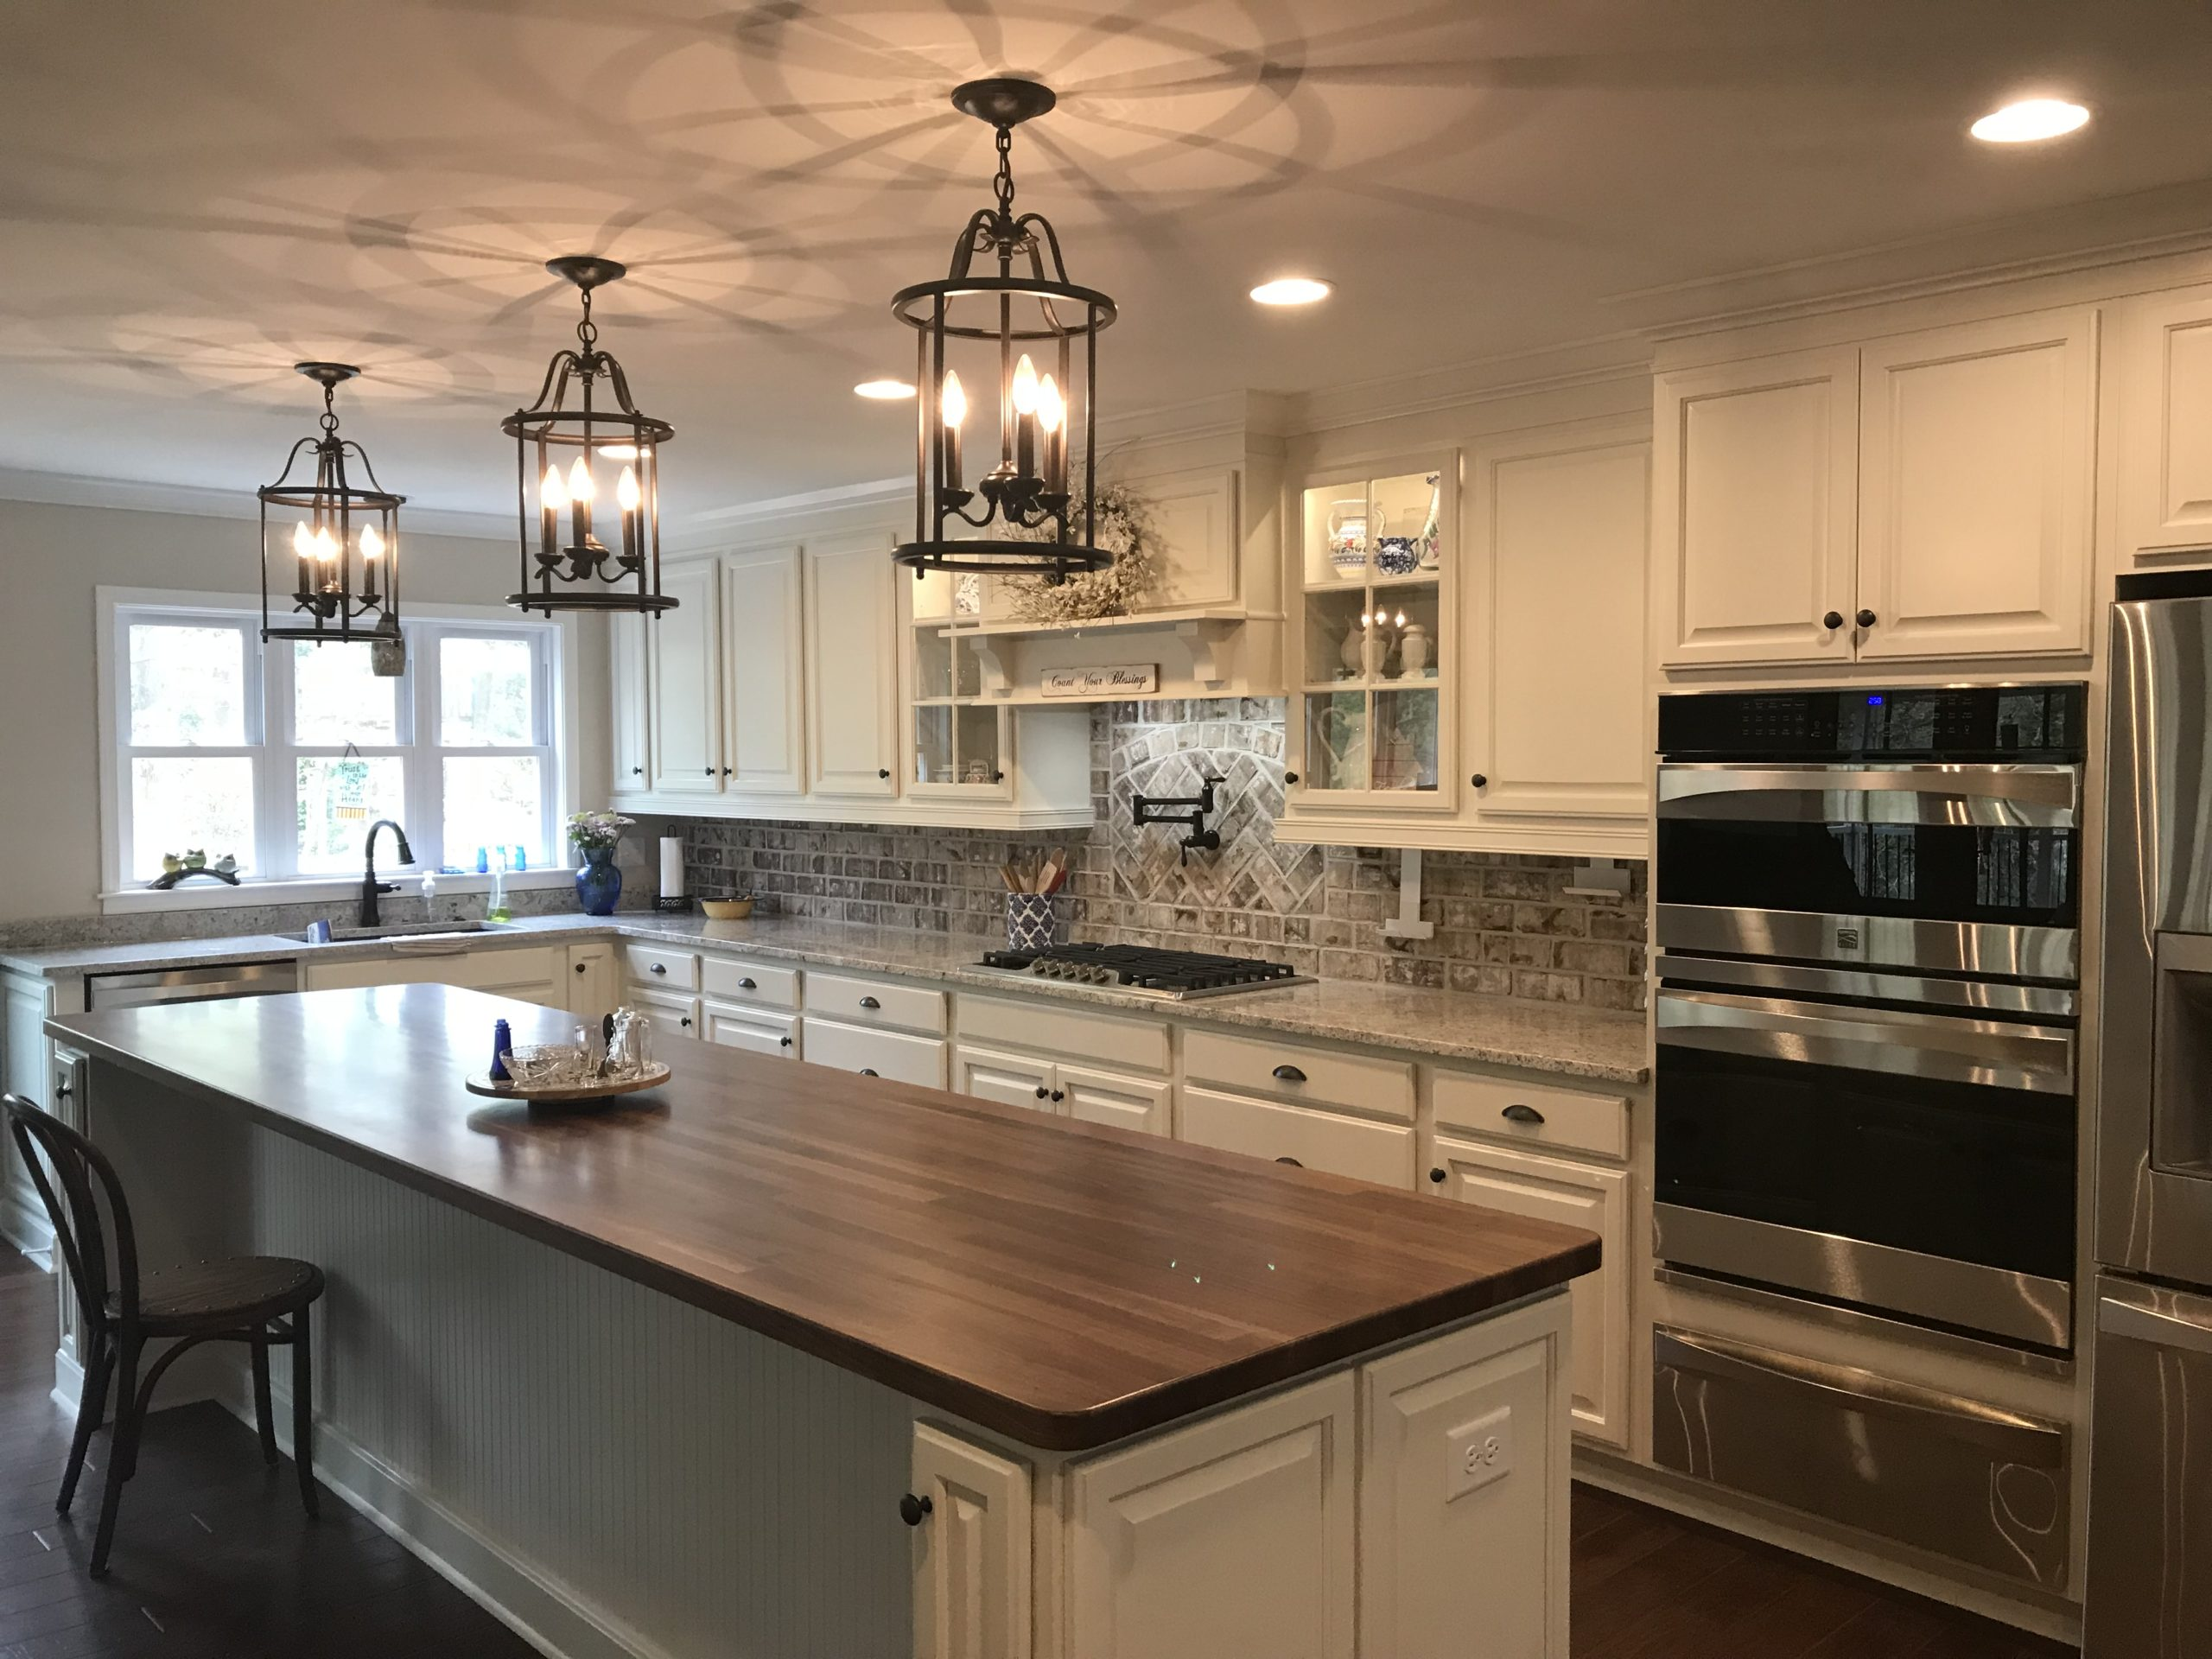 kitchen-remodeling-work-TAG-Builder-104-WW-Kitchen-Remodel-1-scaled